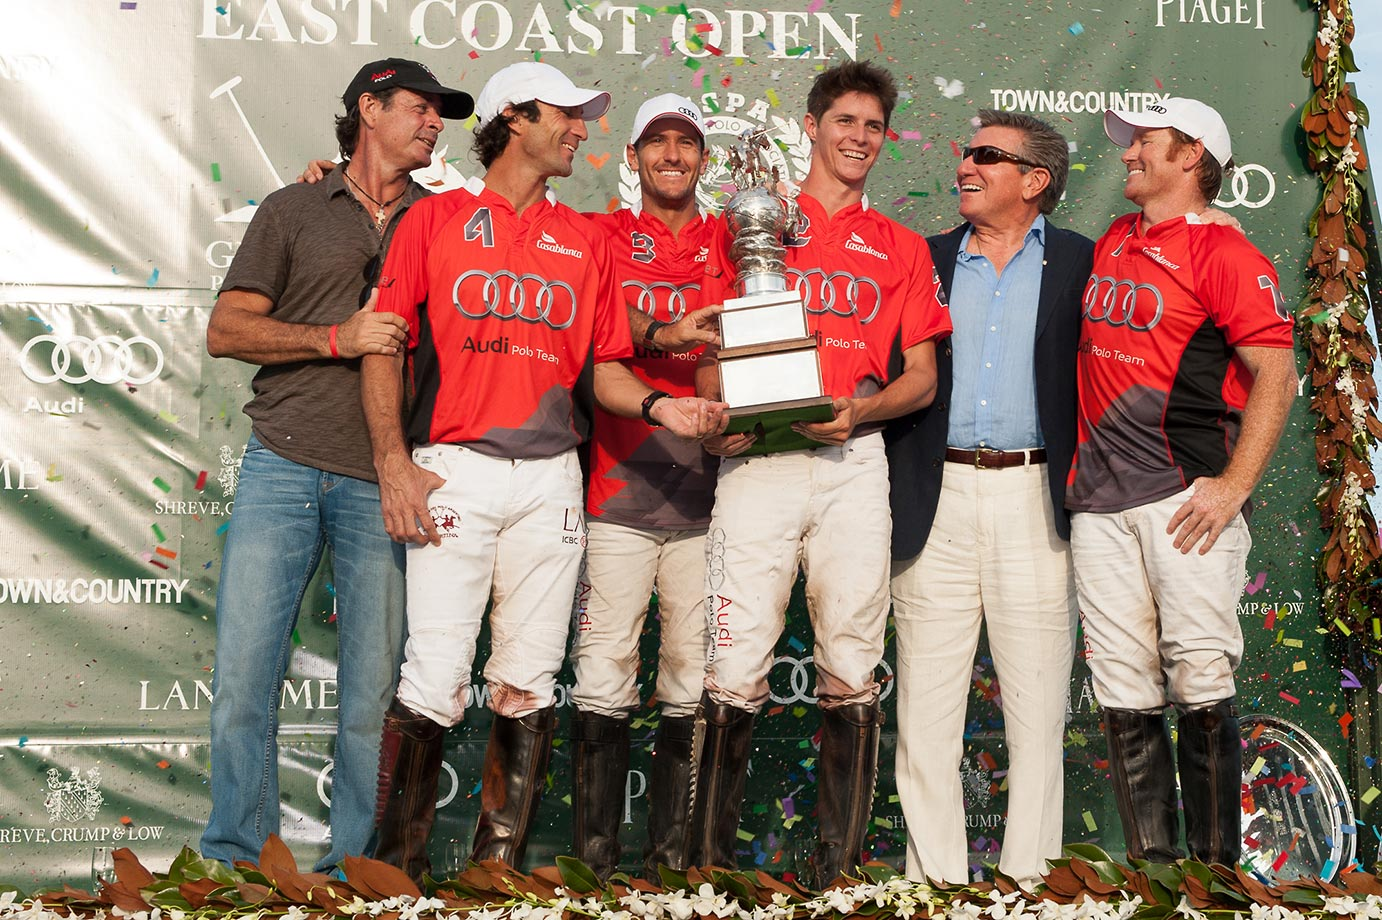 Team Audi celebrates its 2015 East Coast Open win over White Birch for the Perry Cup.